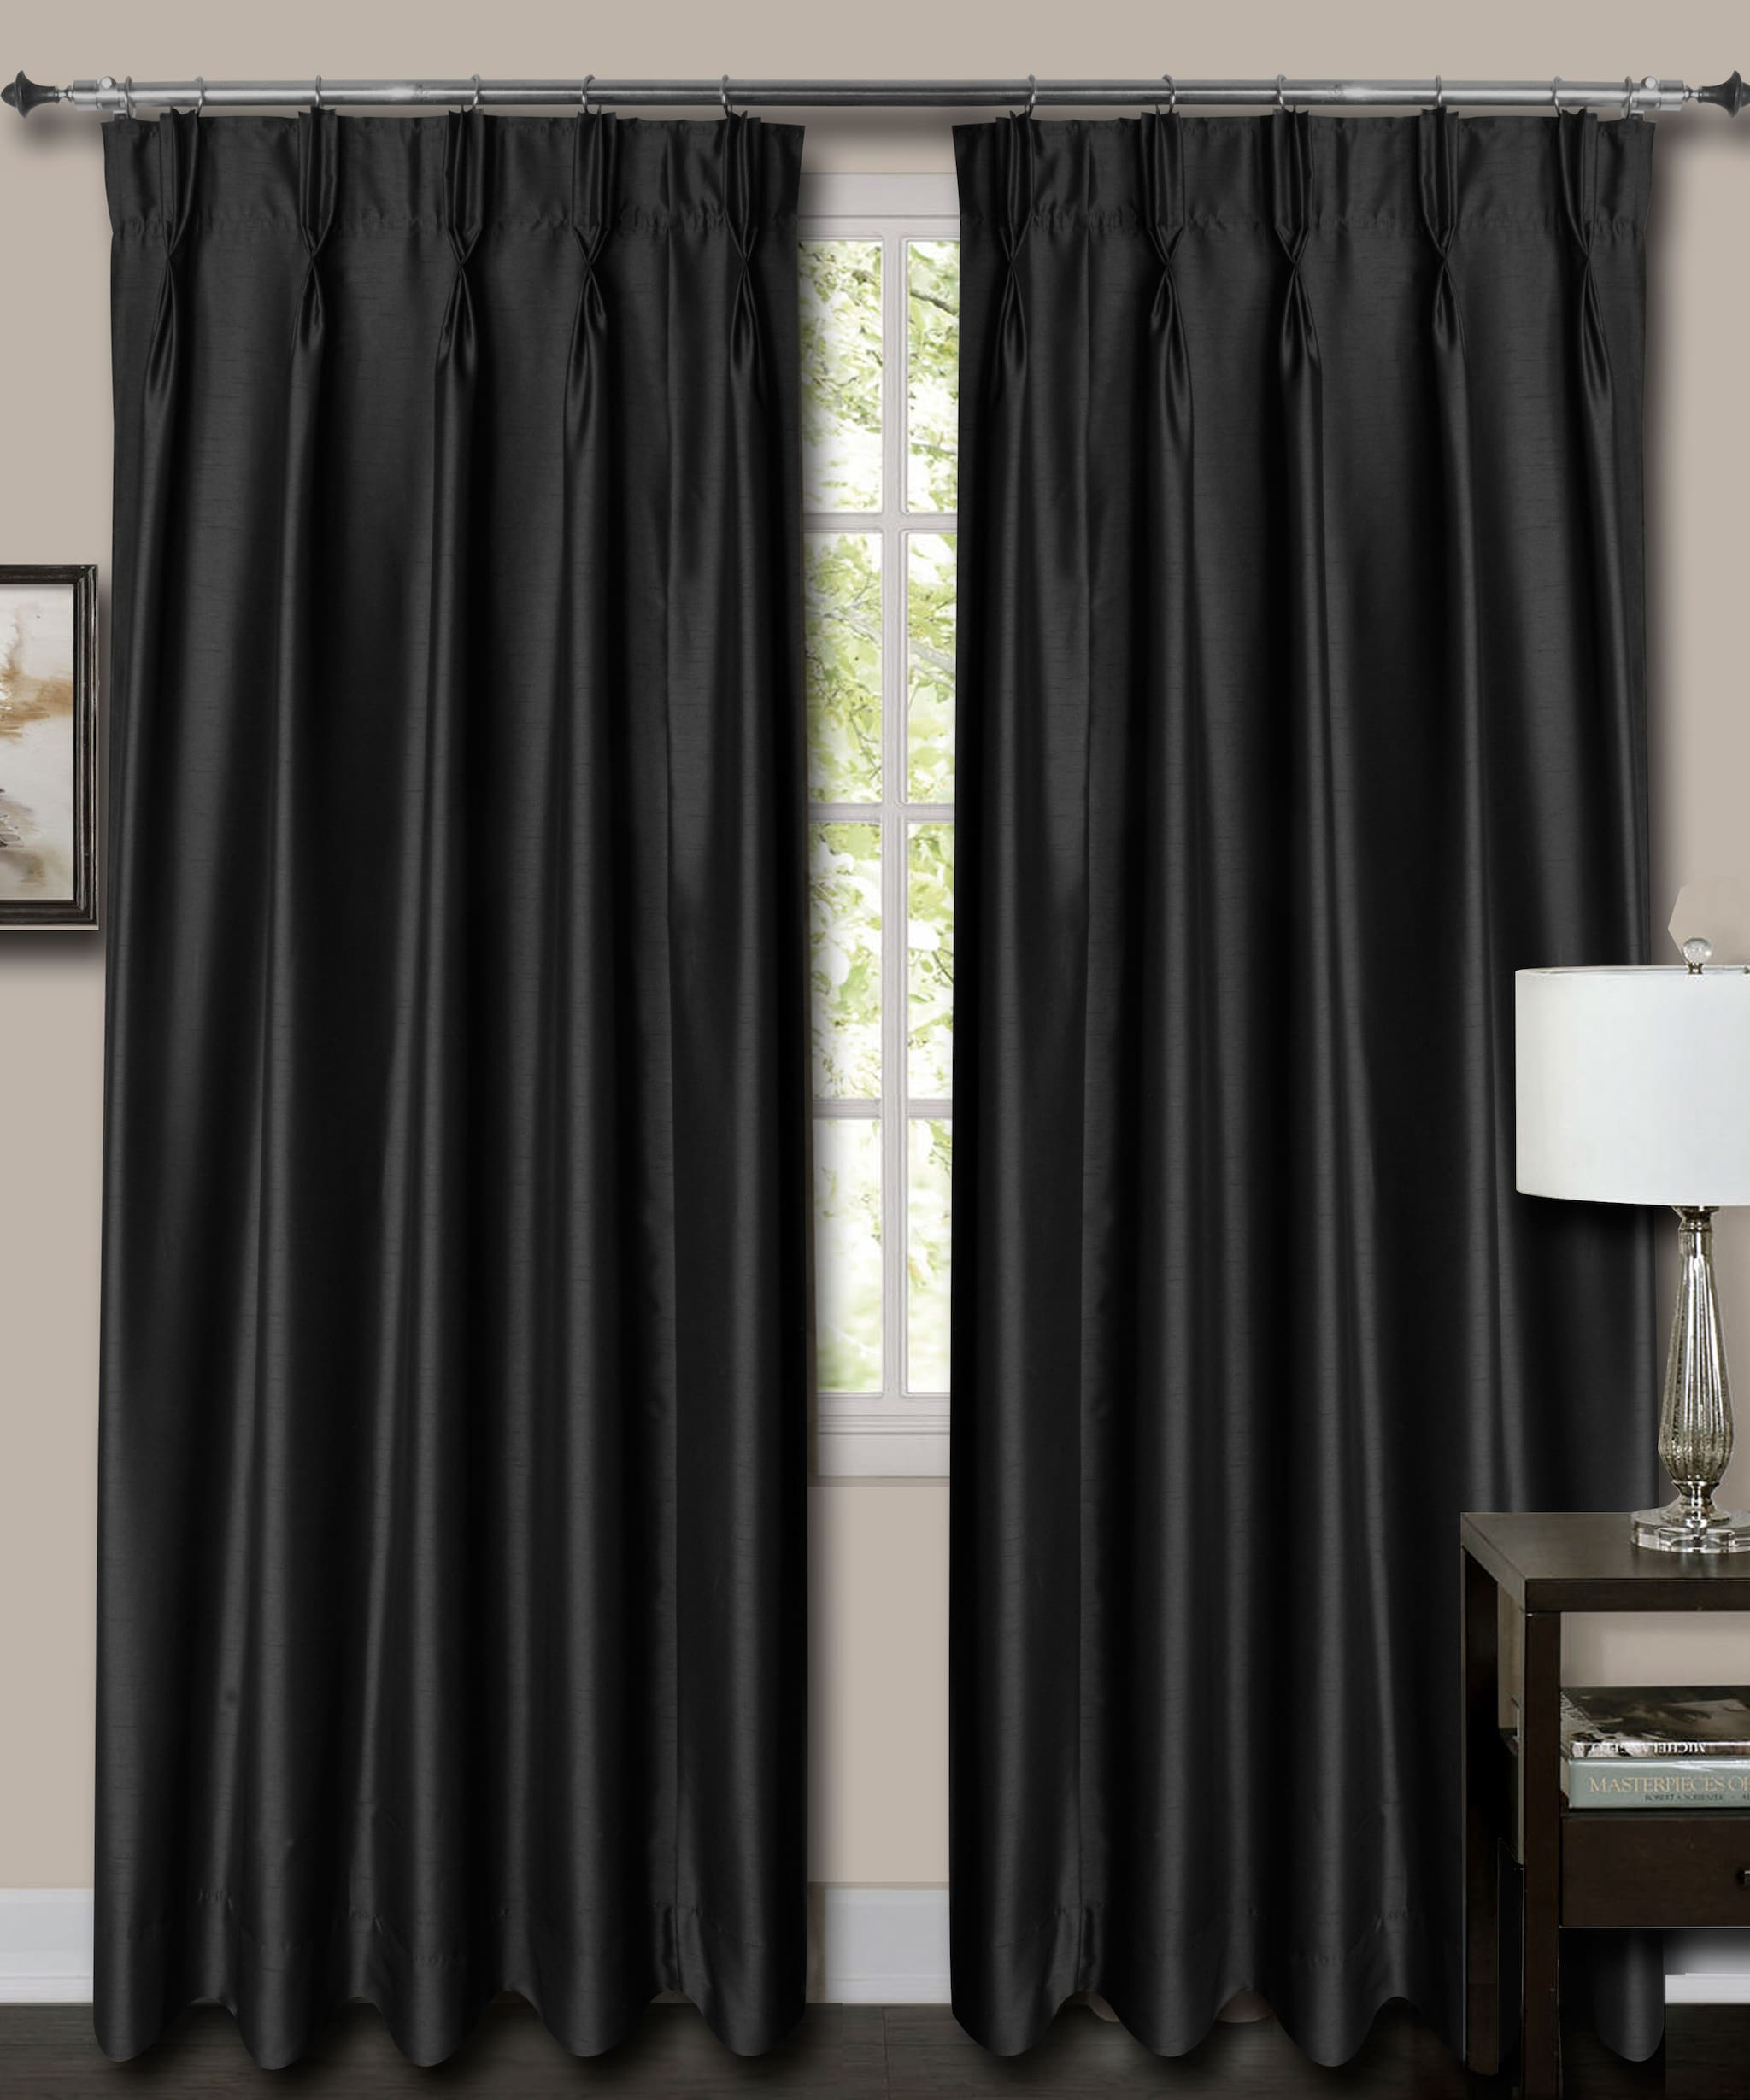 "French Pleat Top Black Faux Silk Dupioni Curtains. (78"" Wide,10 Feet Long,Thick Lining)"